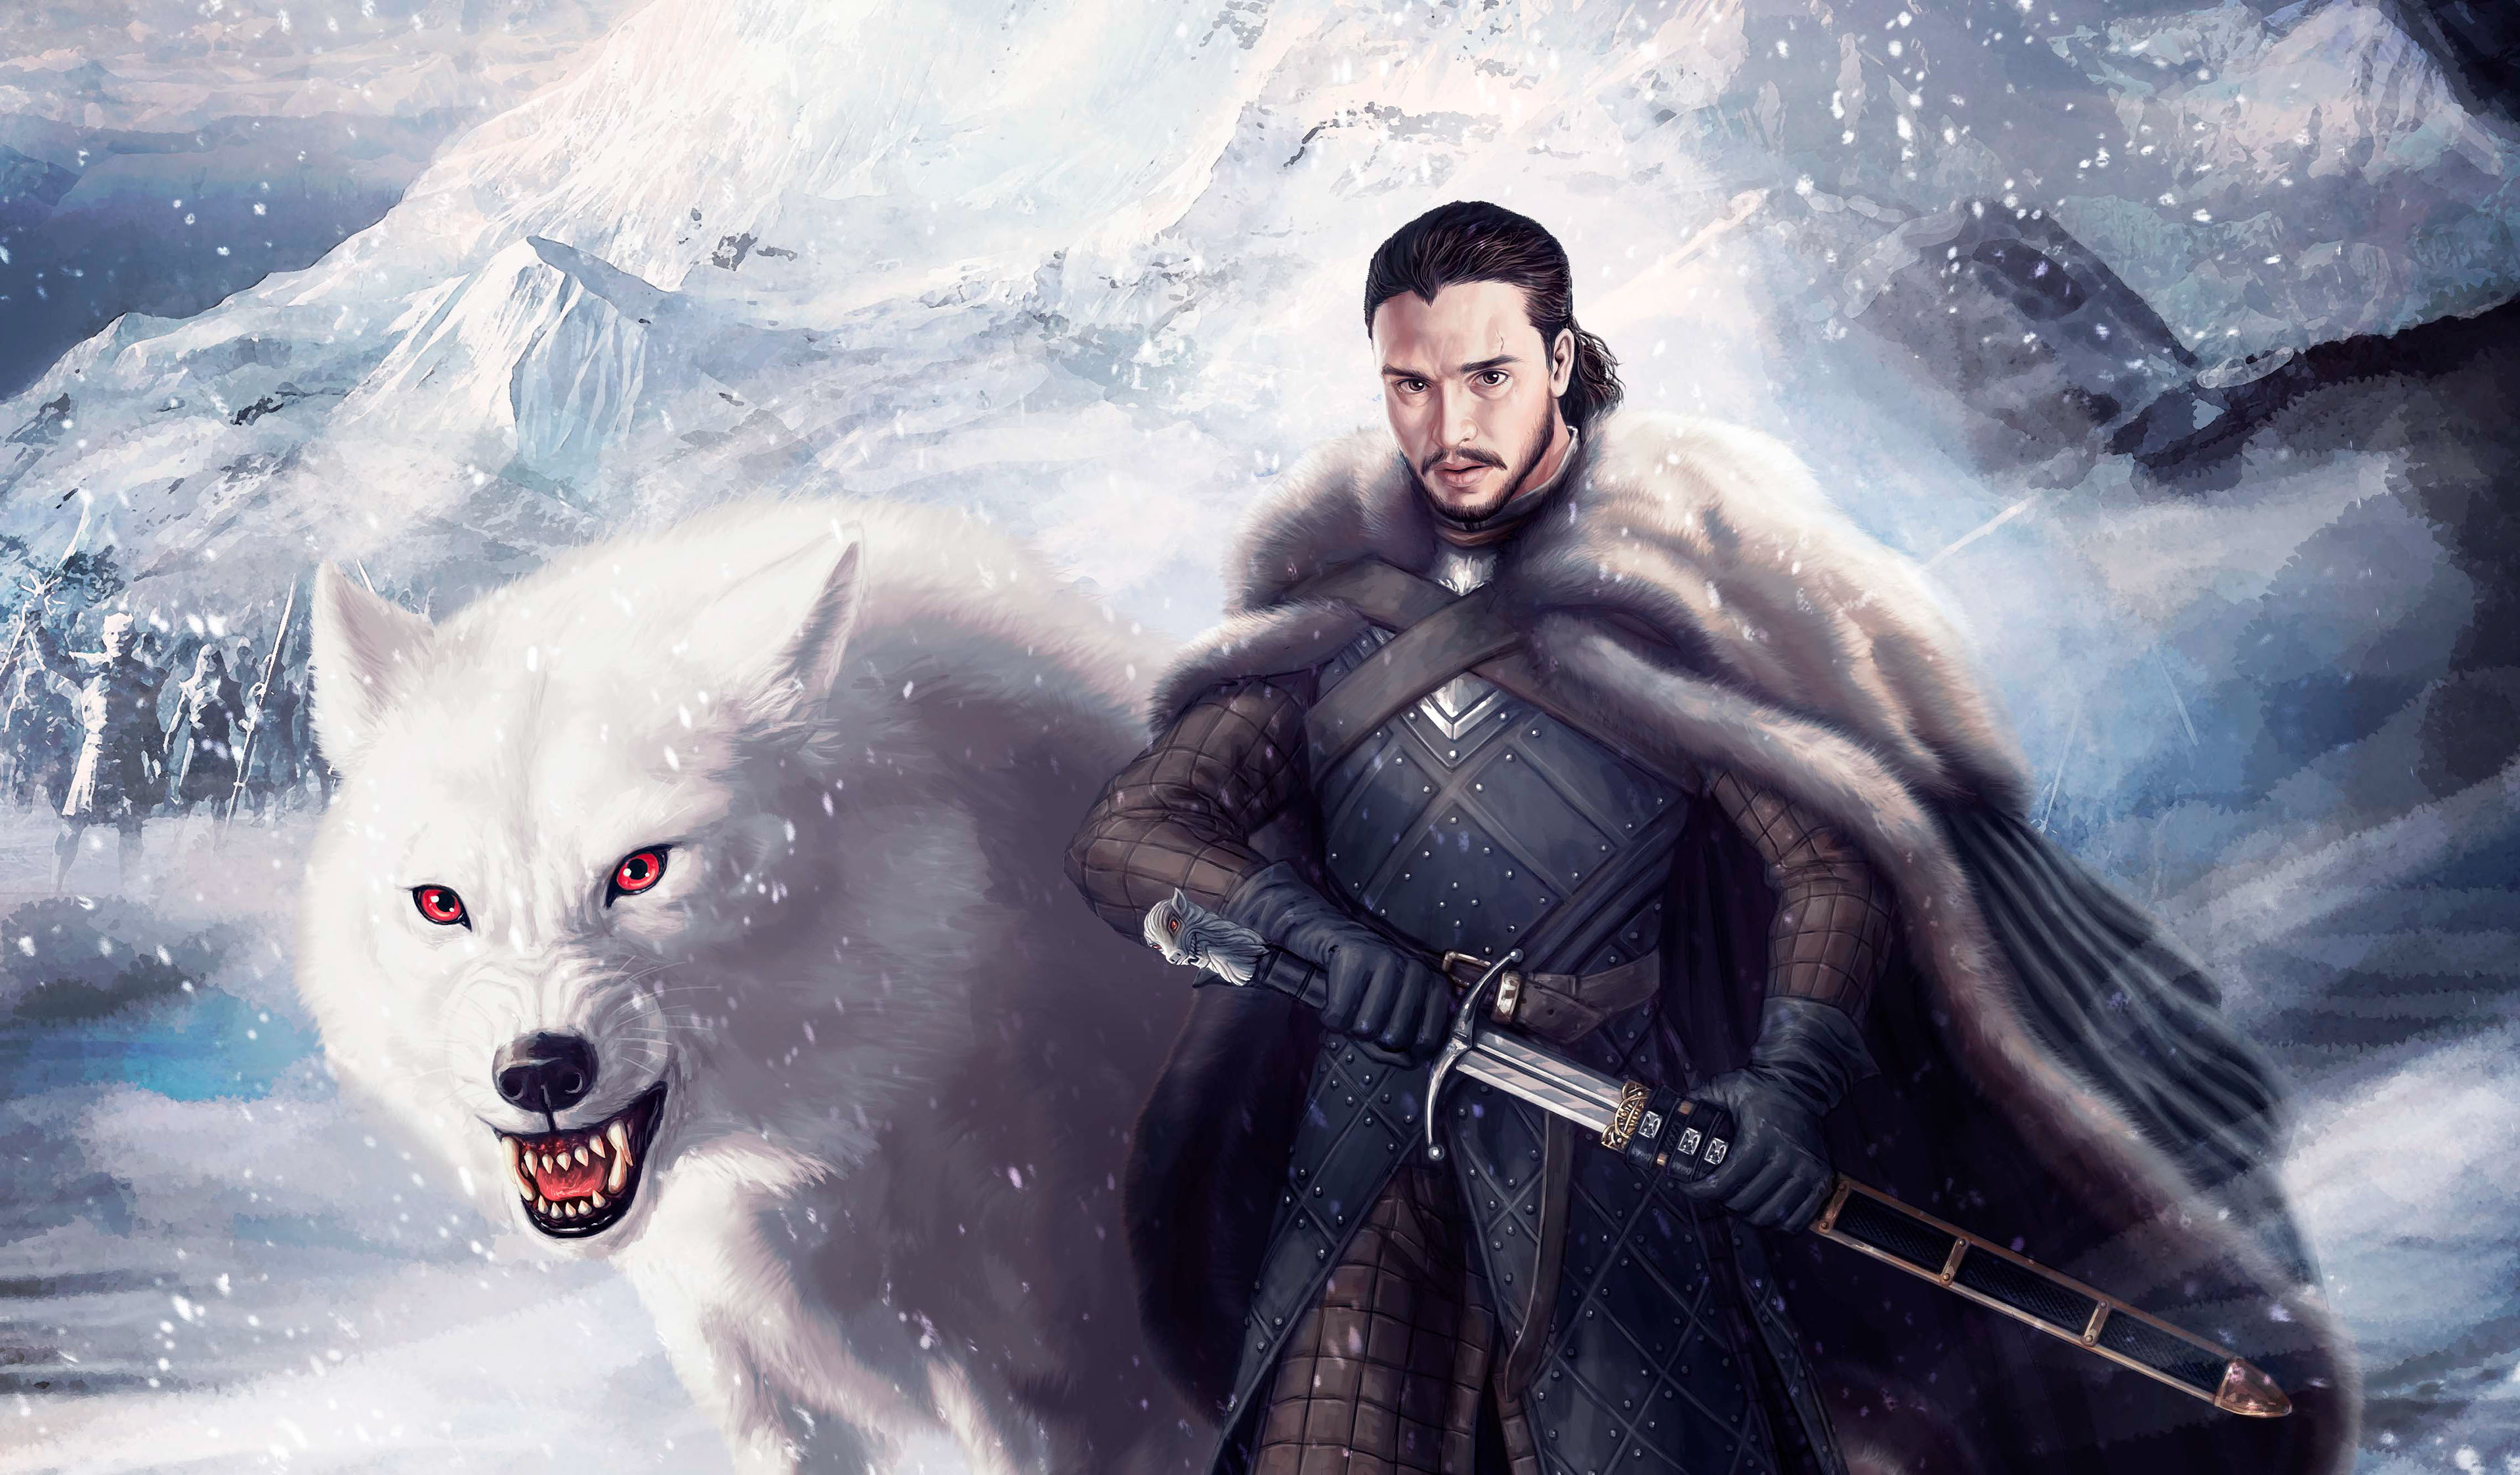 Game Of Thrones Jon Snow Wallpaper Posted By Samantha Peltier